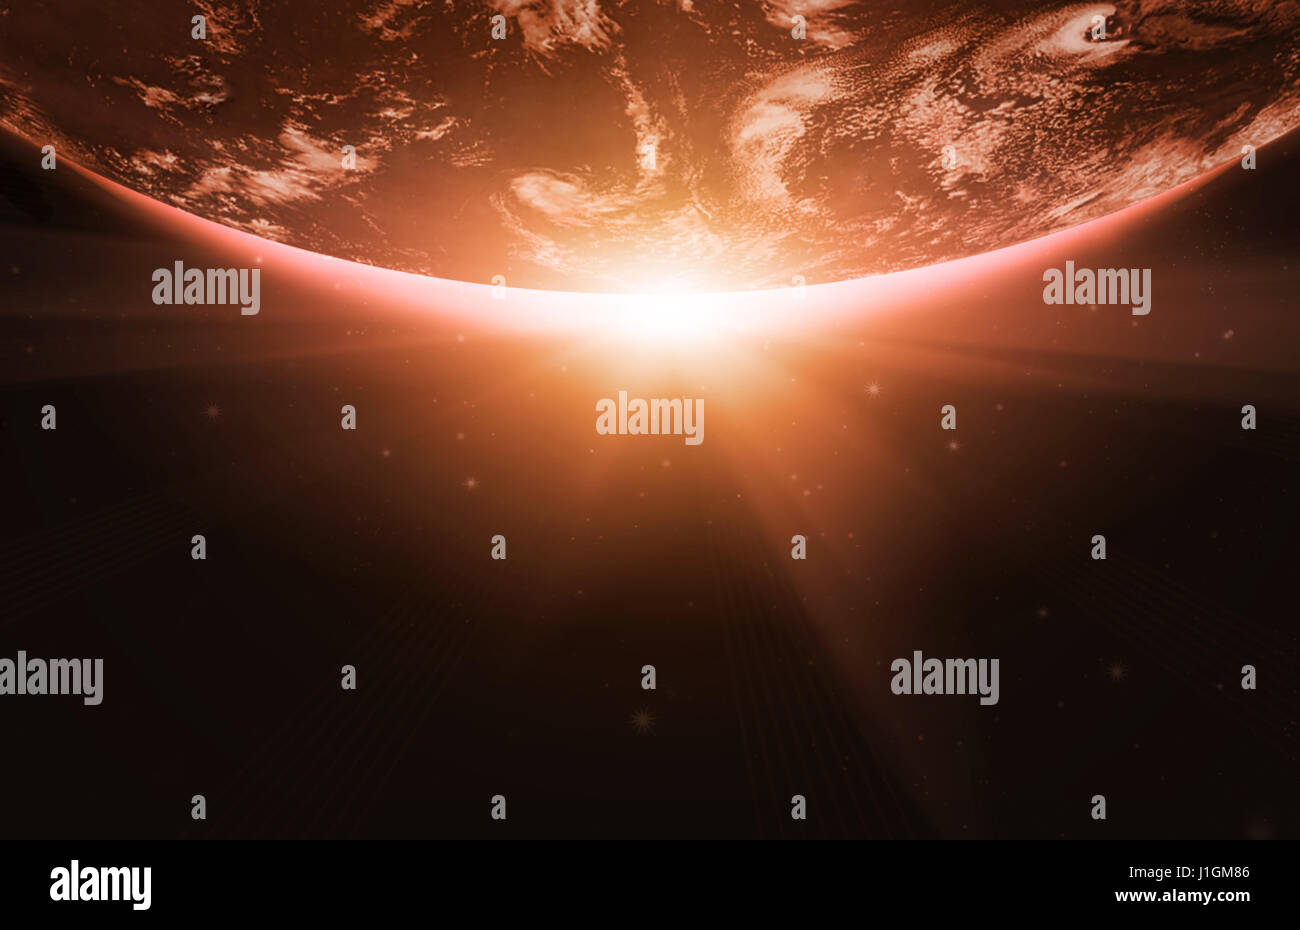 Planet earth with sunrise in the space - Stock Image